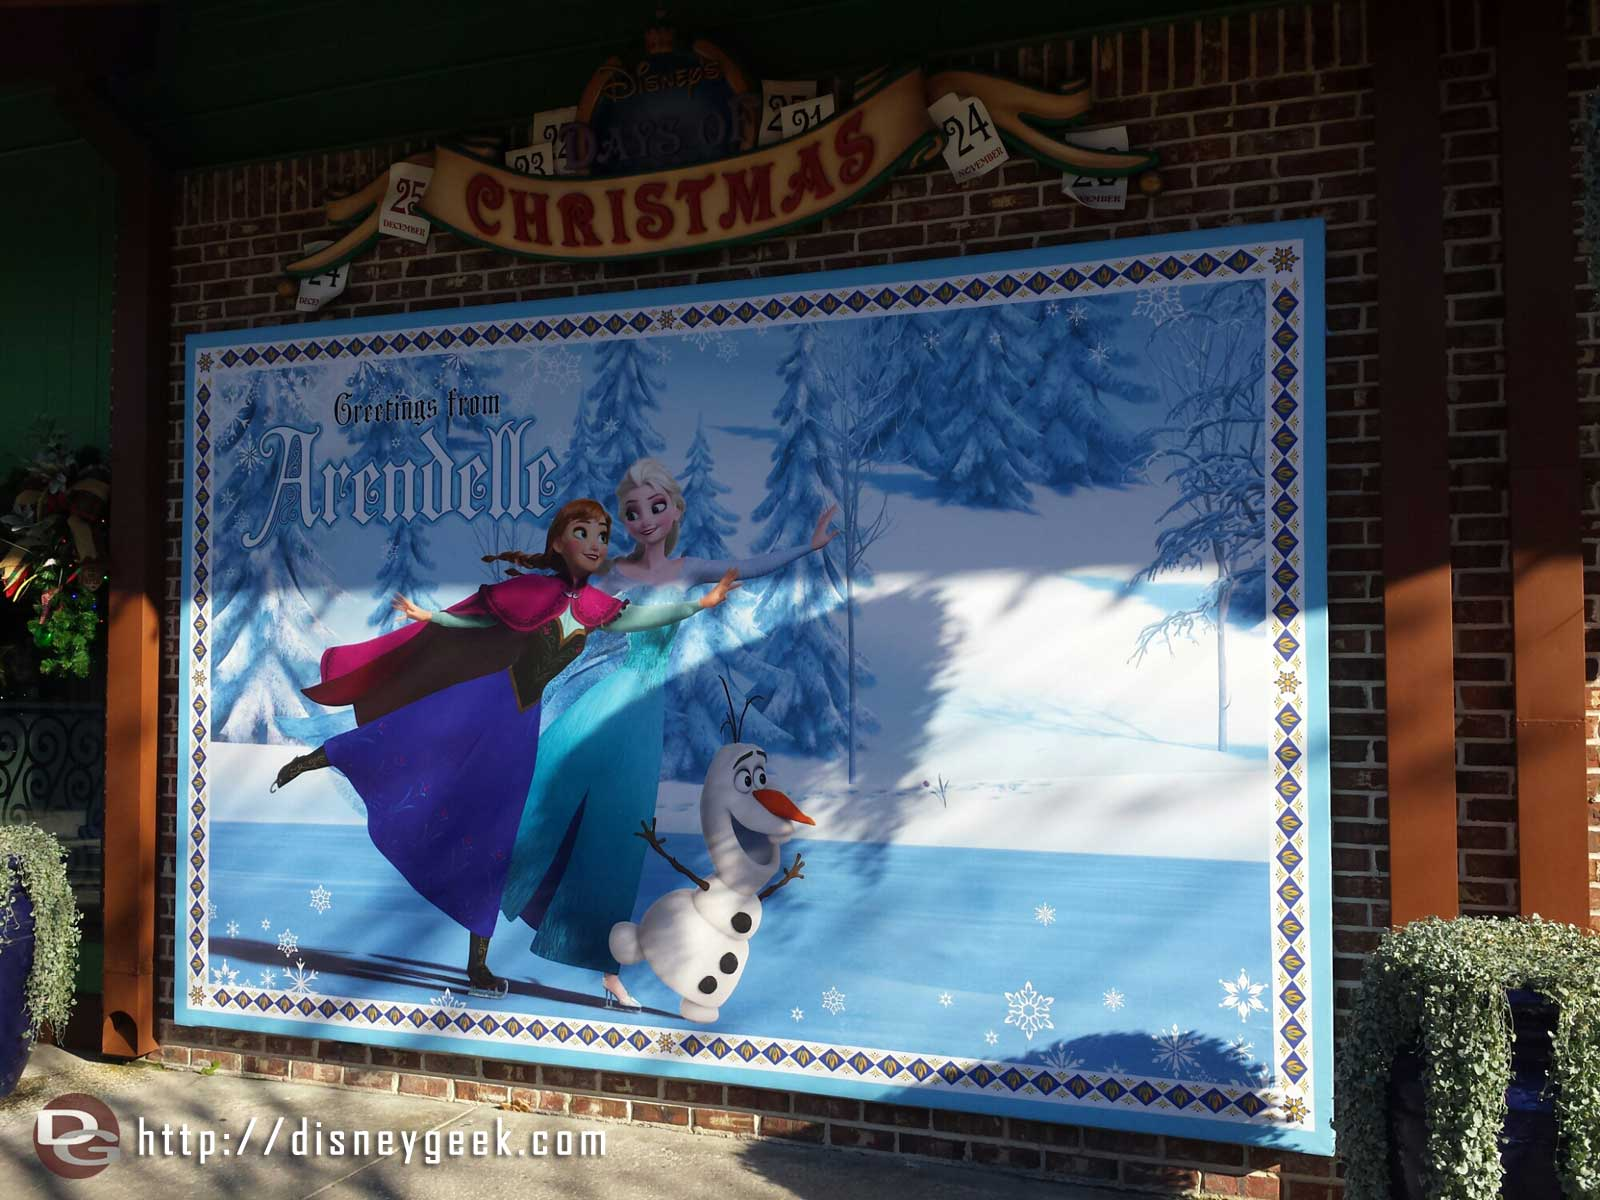 Visiting the Downtown Disney Marketplace, #Frozen has a large presence with the soundtrack playing and signage